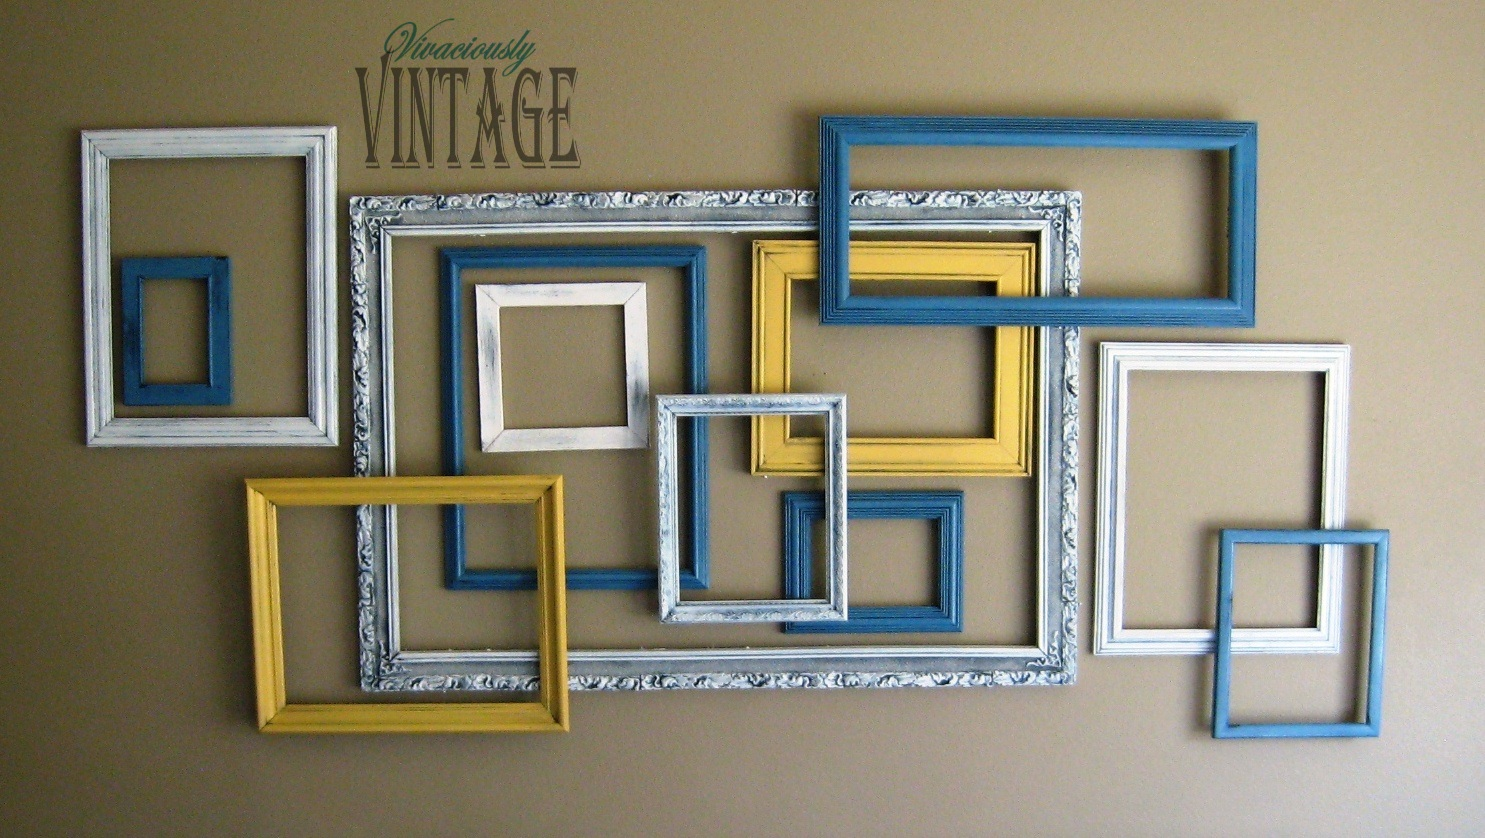 Ansley designs 3d layered picture frame art 3d layered picture frame art jeuxipadfo Gallery